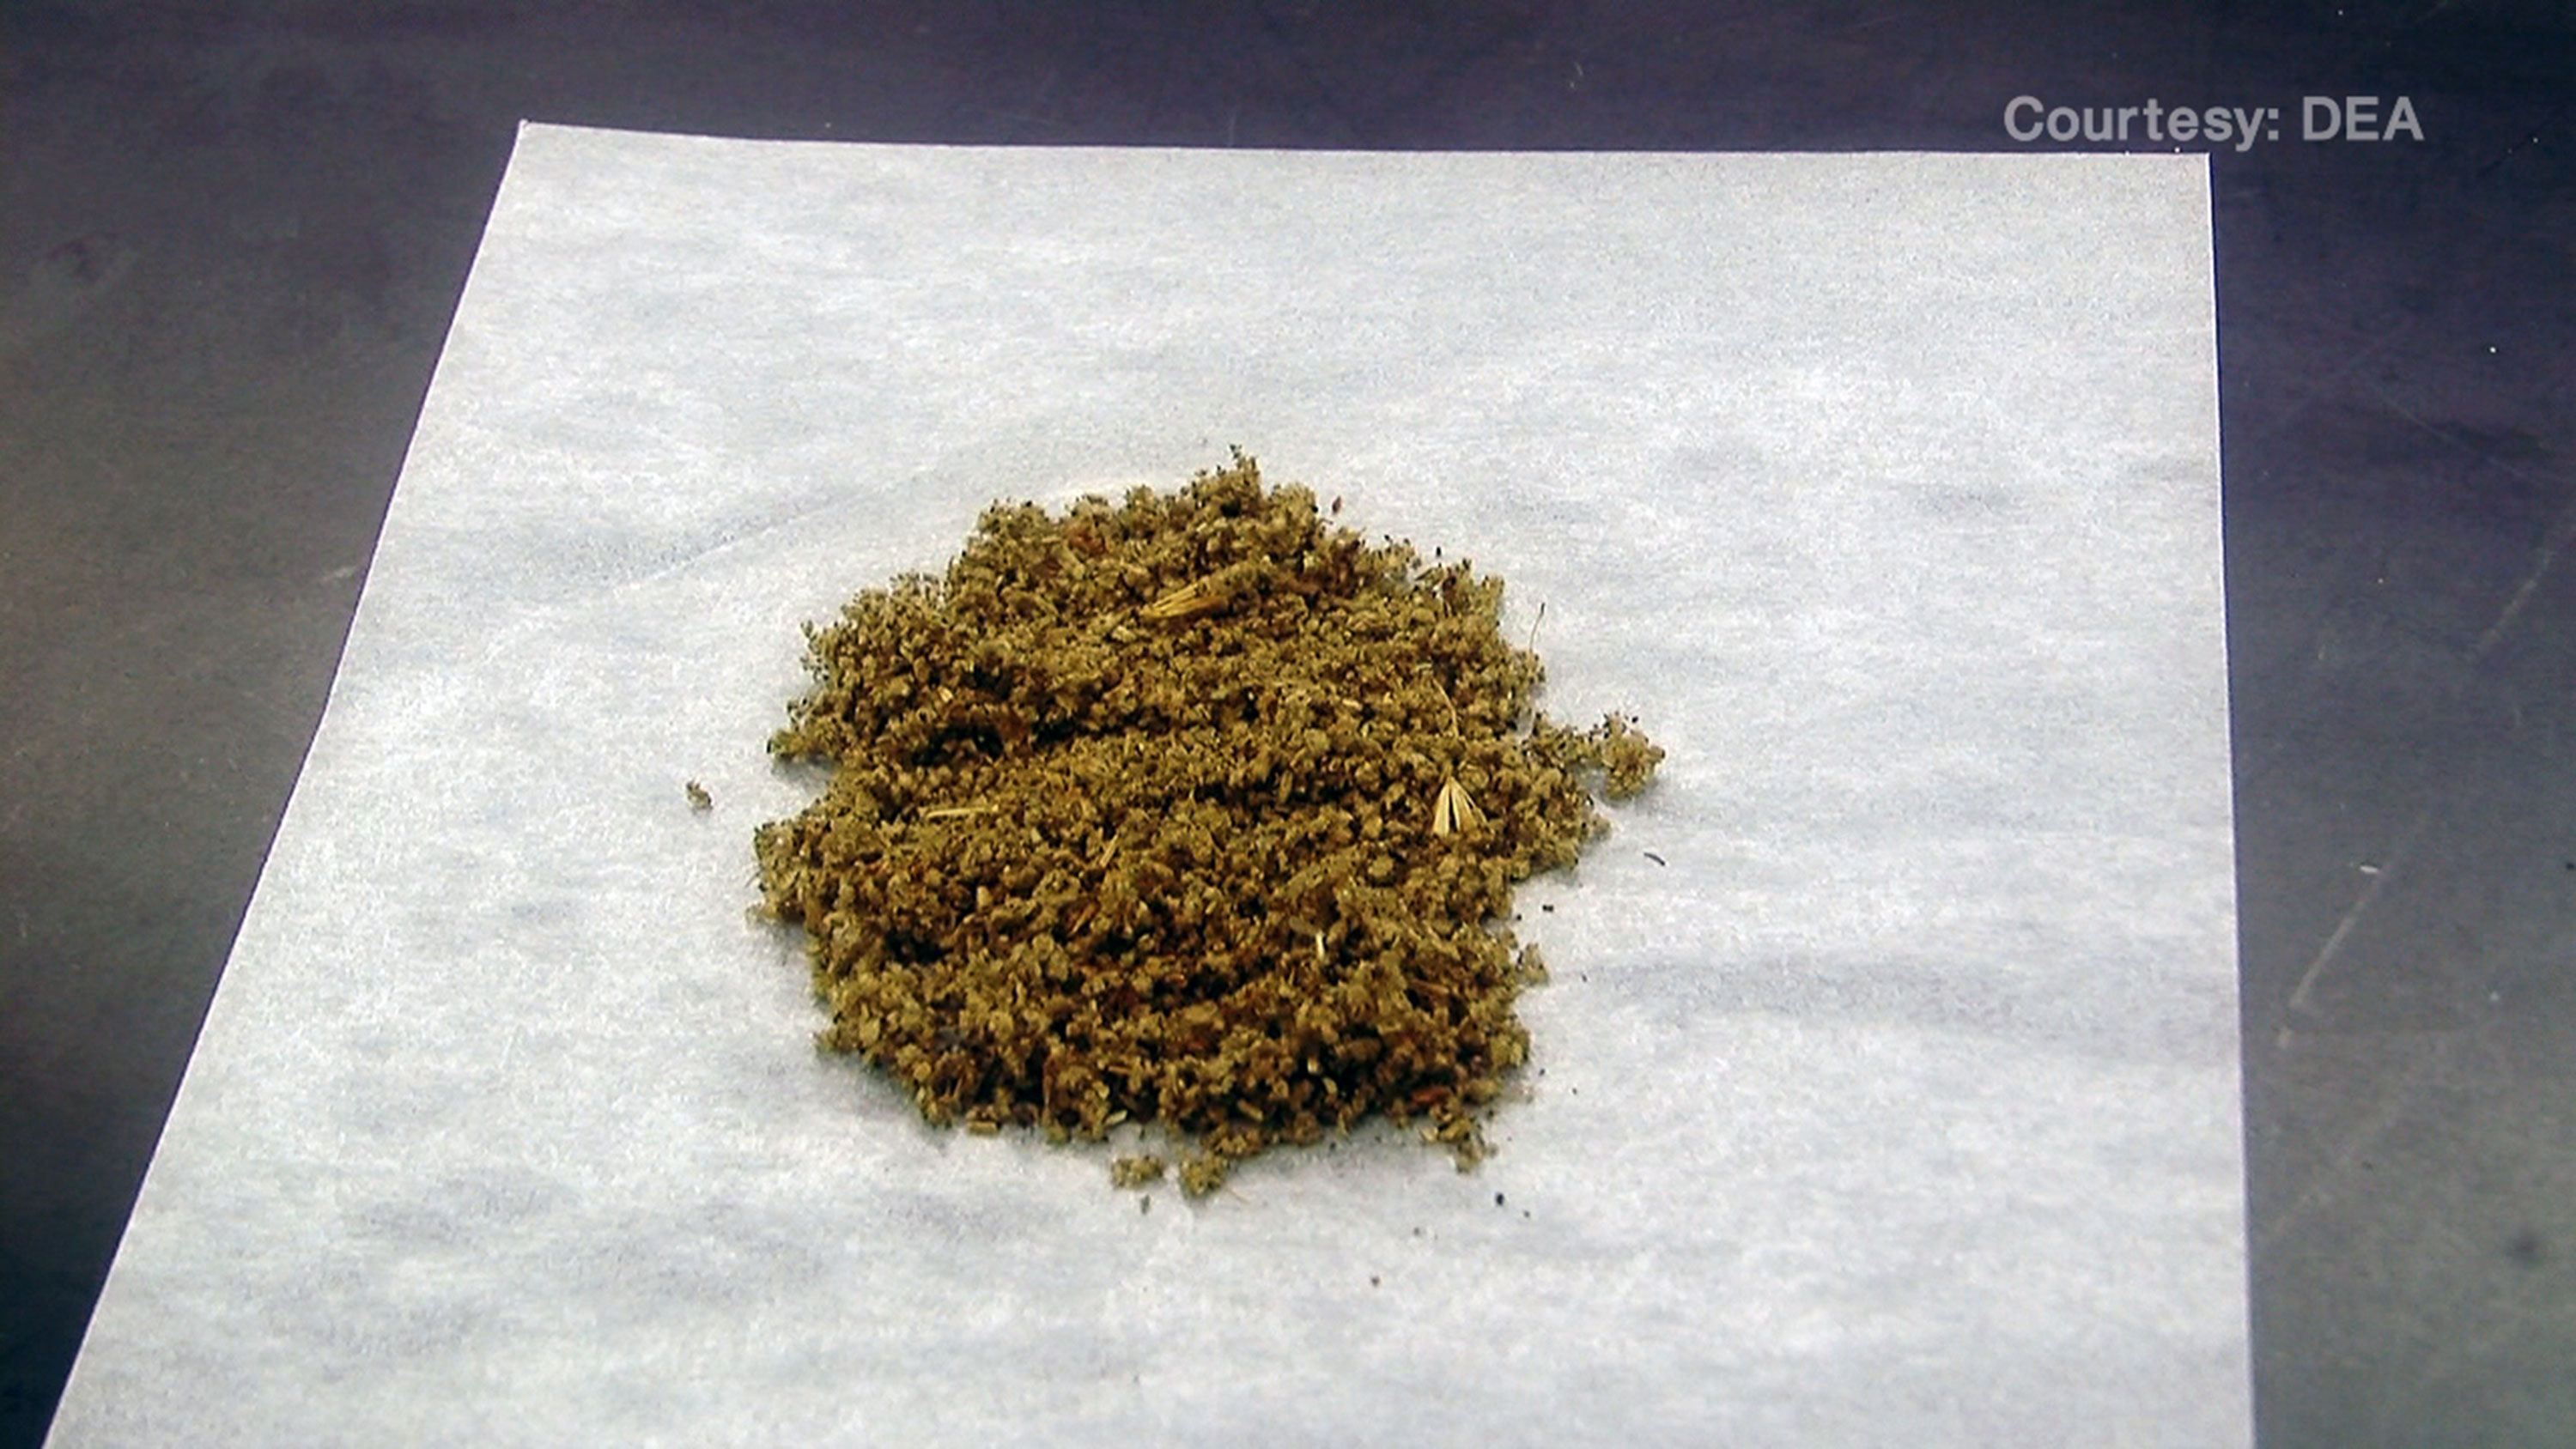 Weed laced with salvia